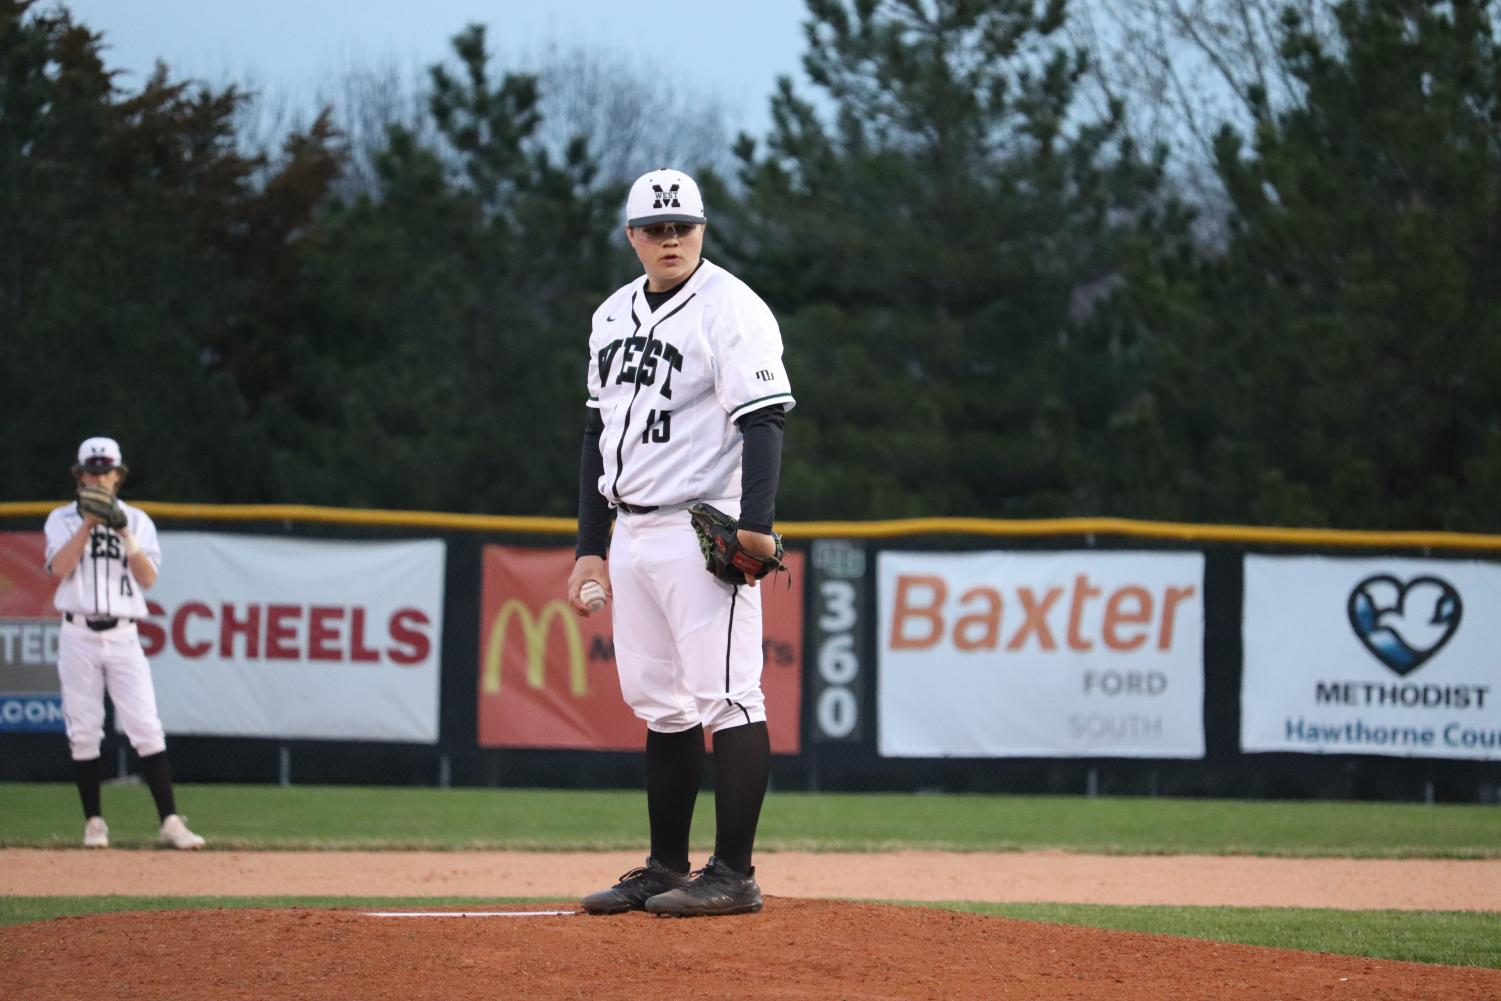 Senior+Keyton+Barnes+focusing+on+home+plate+as+he+prepares+to+pitch.